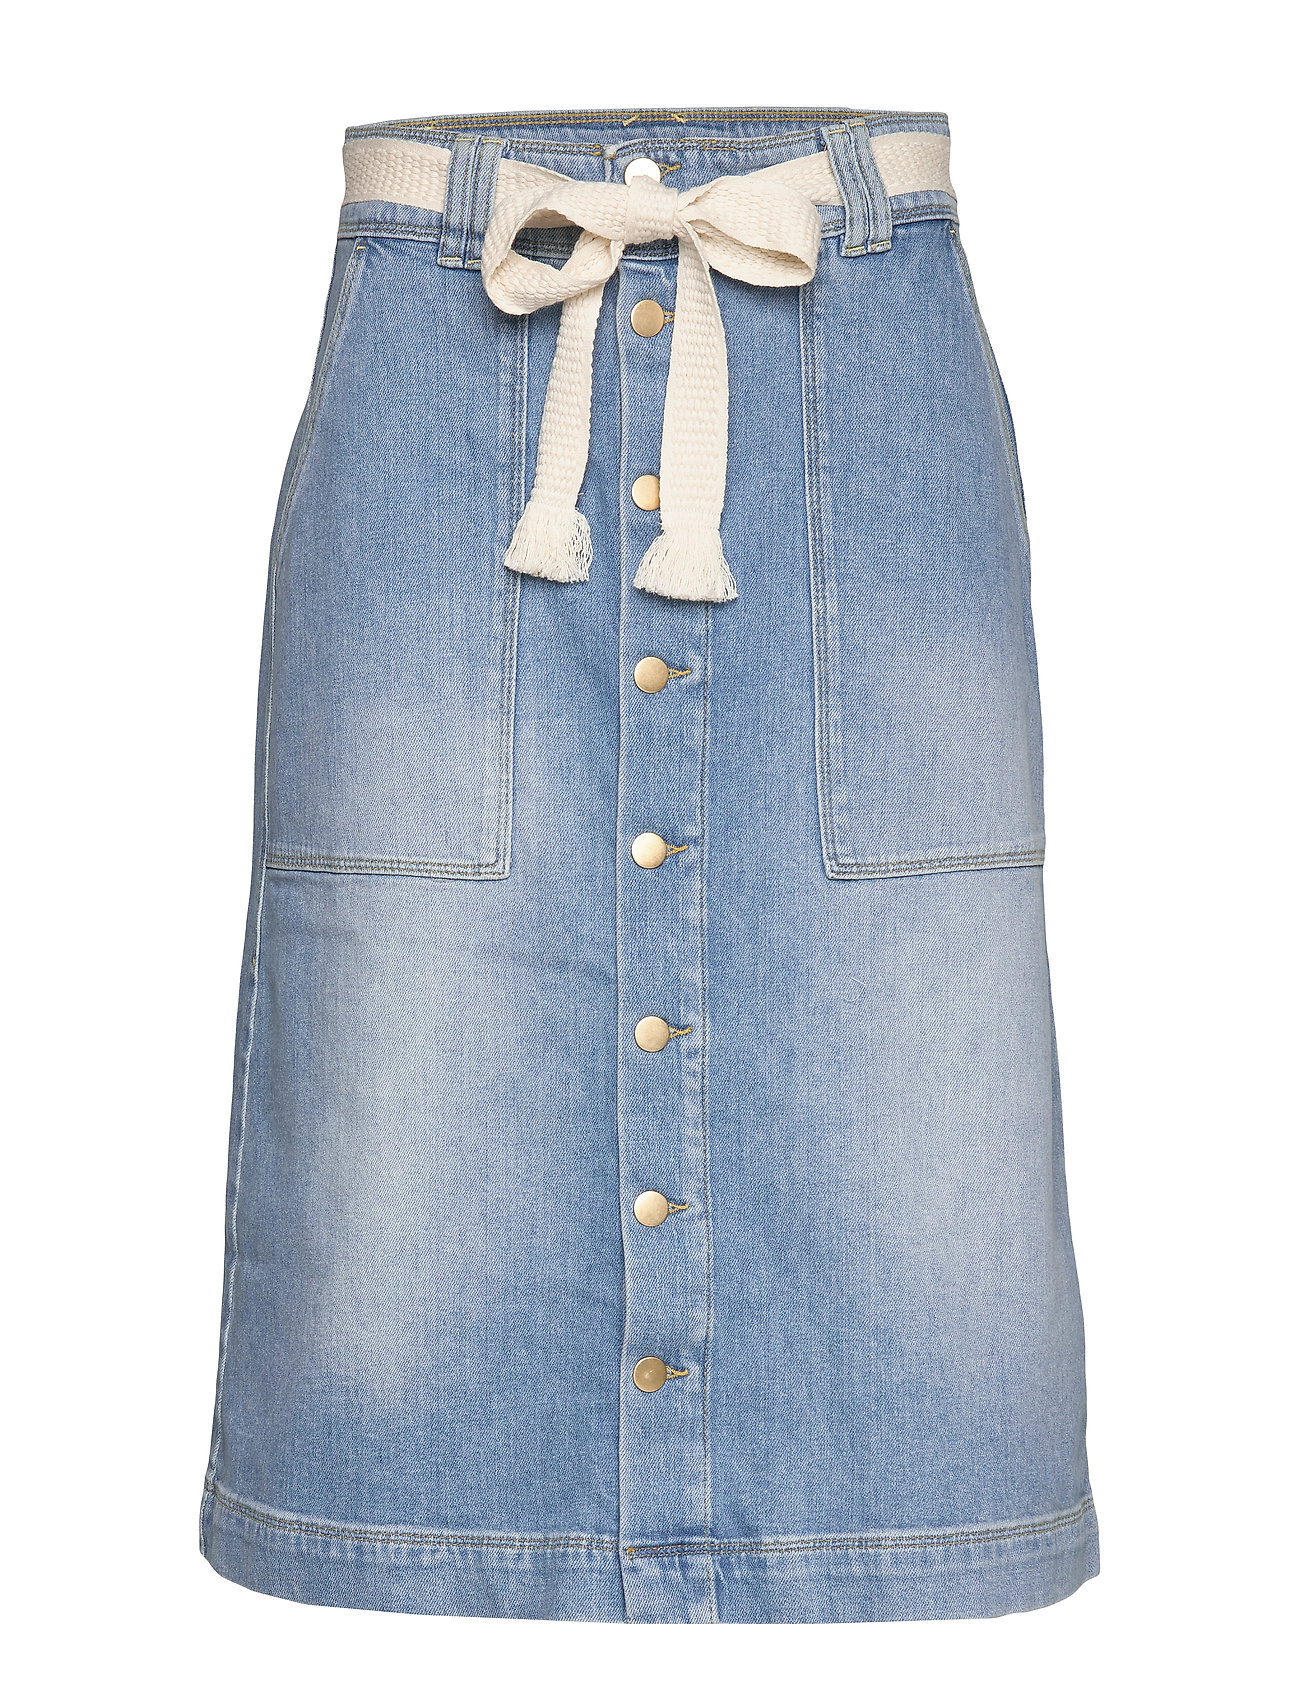 Noa Noa Skirt - DENIM